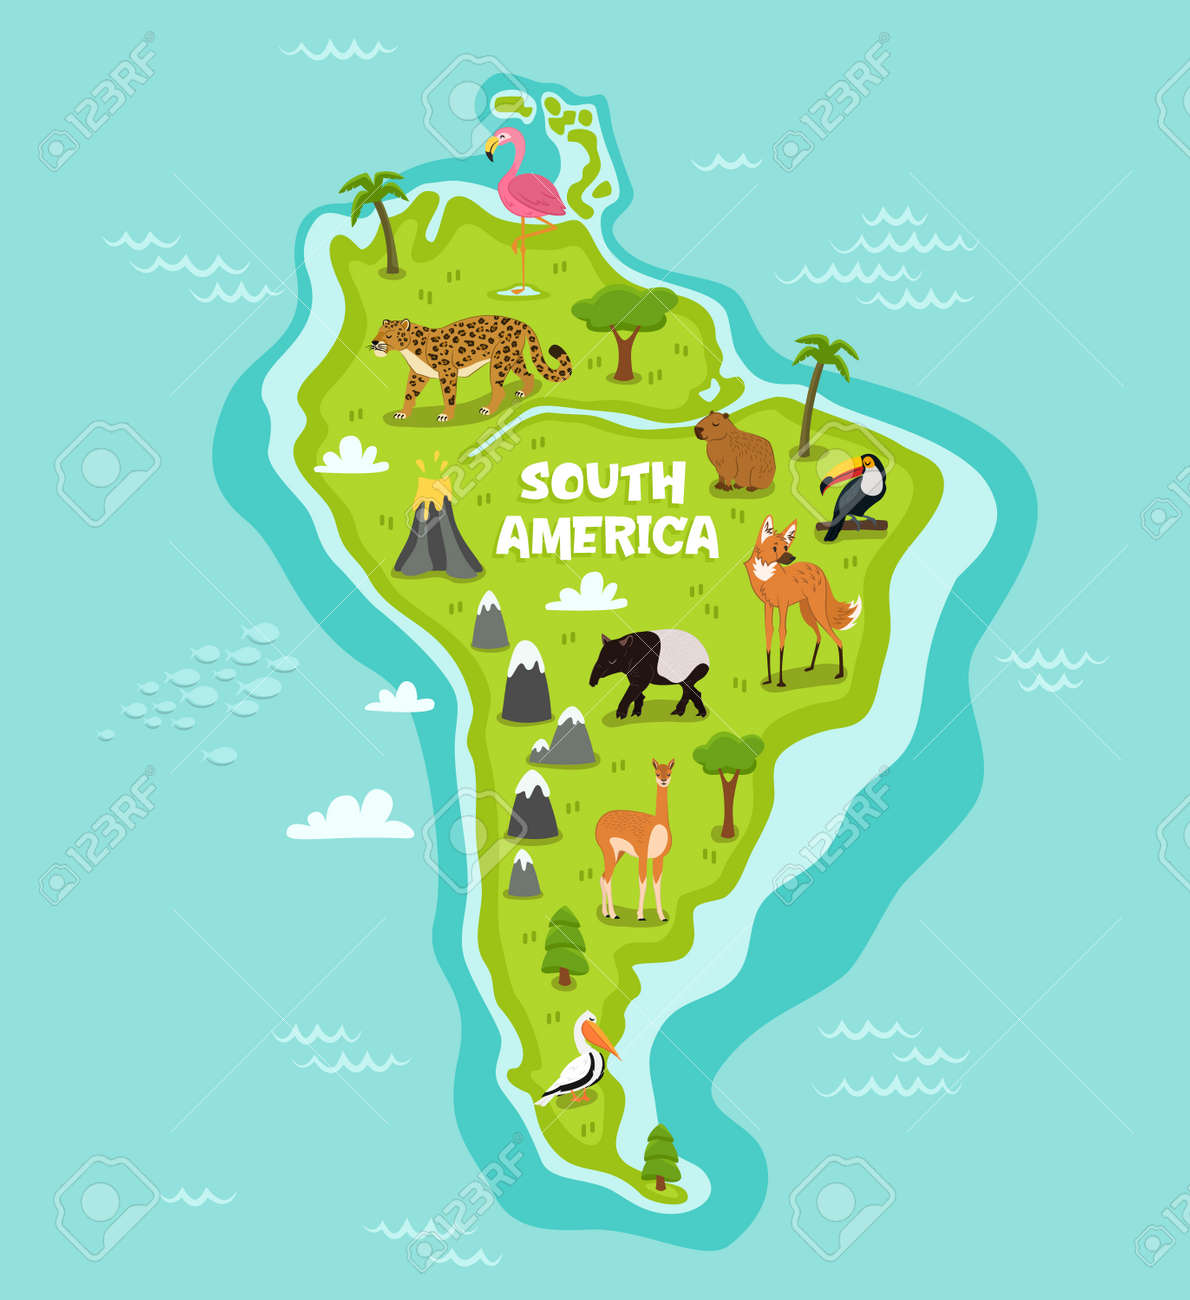 South american map with wildlife animals vector illustration. Cartoon flora and fauna, wolf, lama, tapir, pelican, flamingo, toucan, jaguar. South american continent in blue ocean with wild animals - 69365215